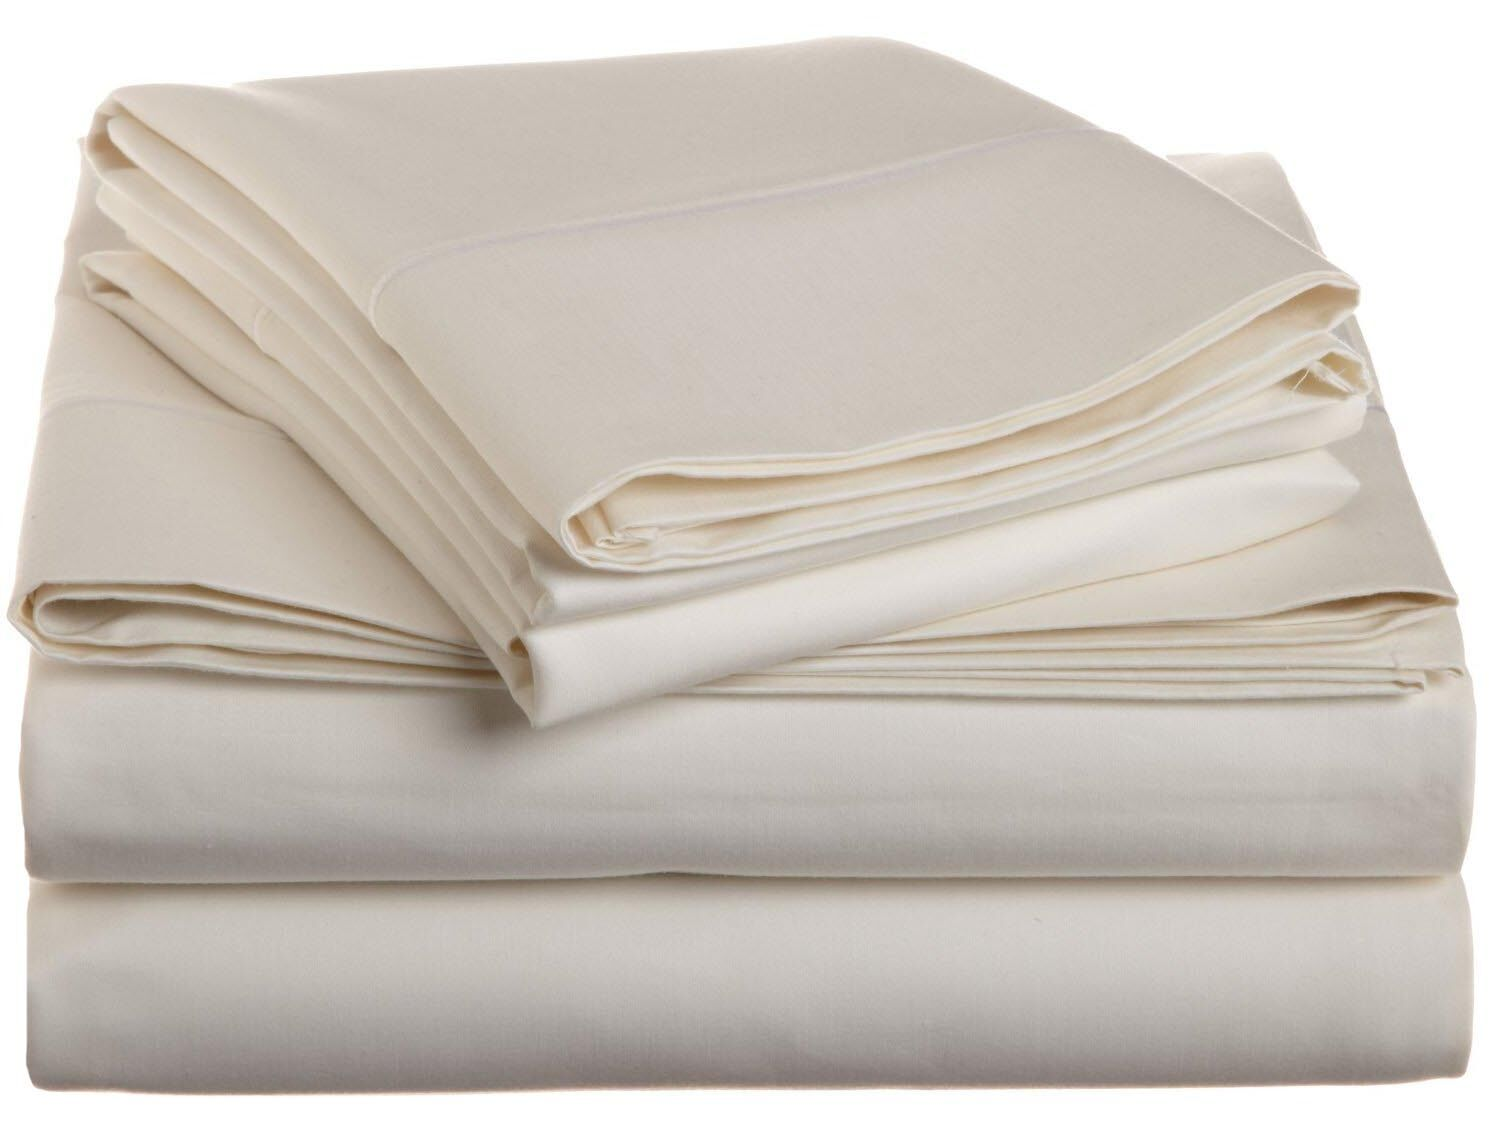 Covertt 1500 Thread Count 100% Cotton Sheet Set Size: Queen, Color: Ivory